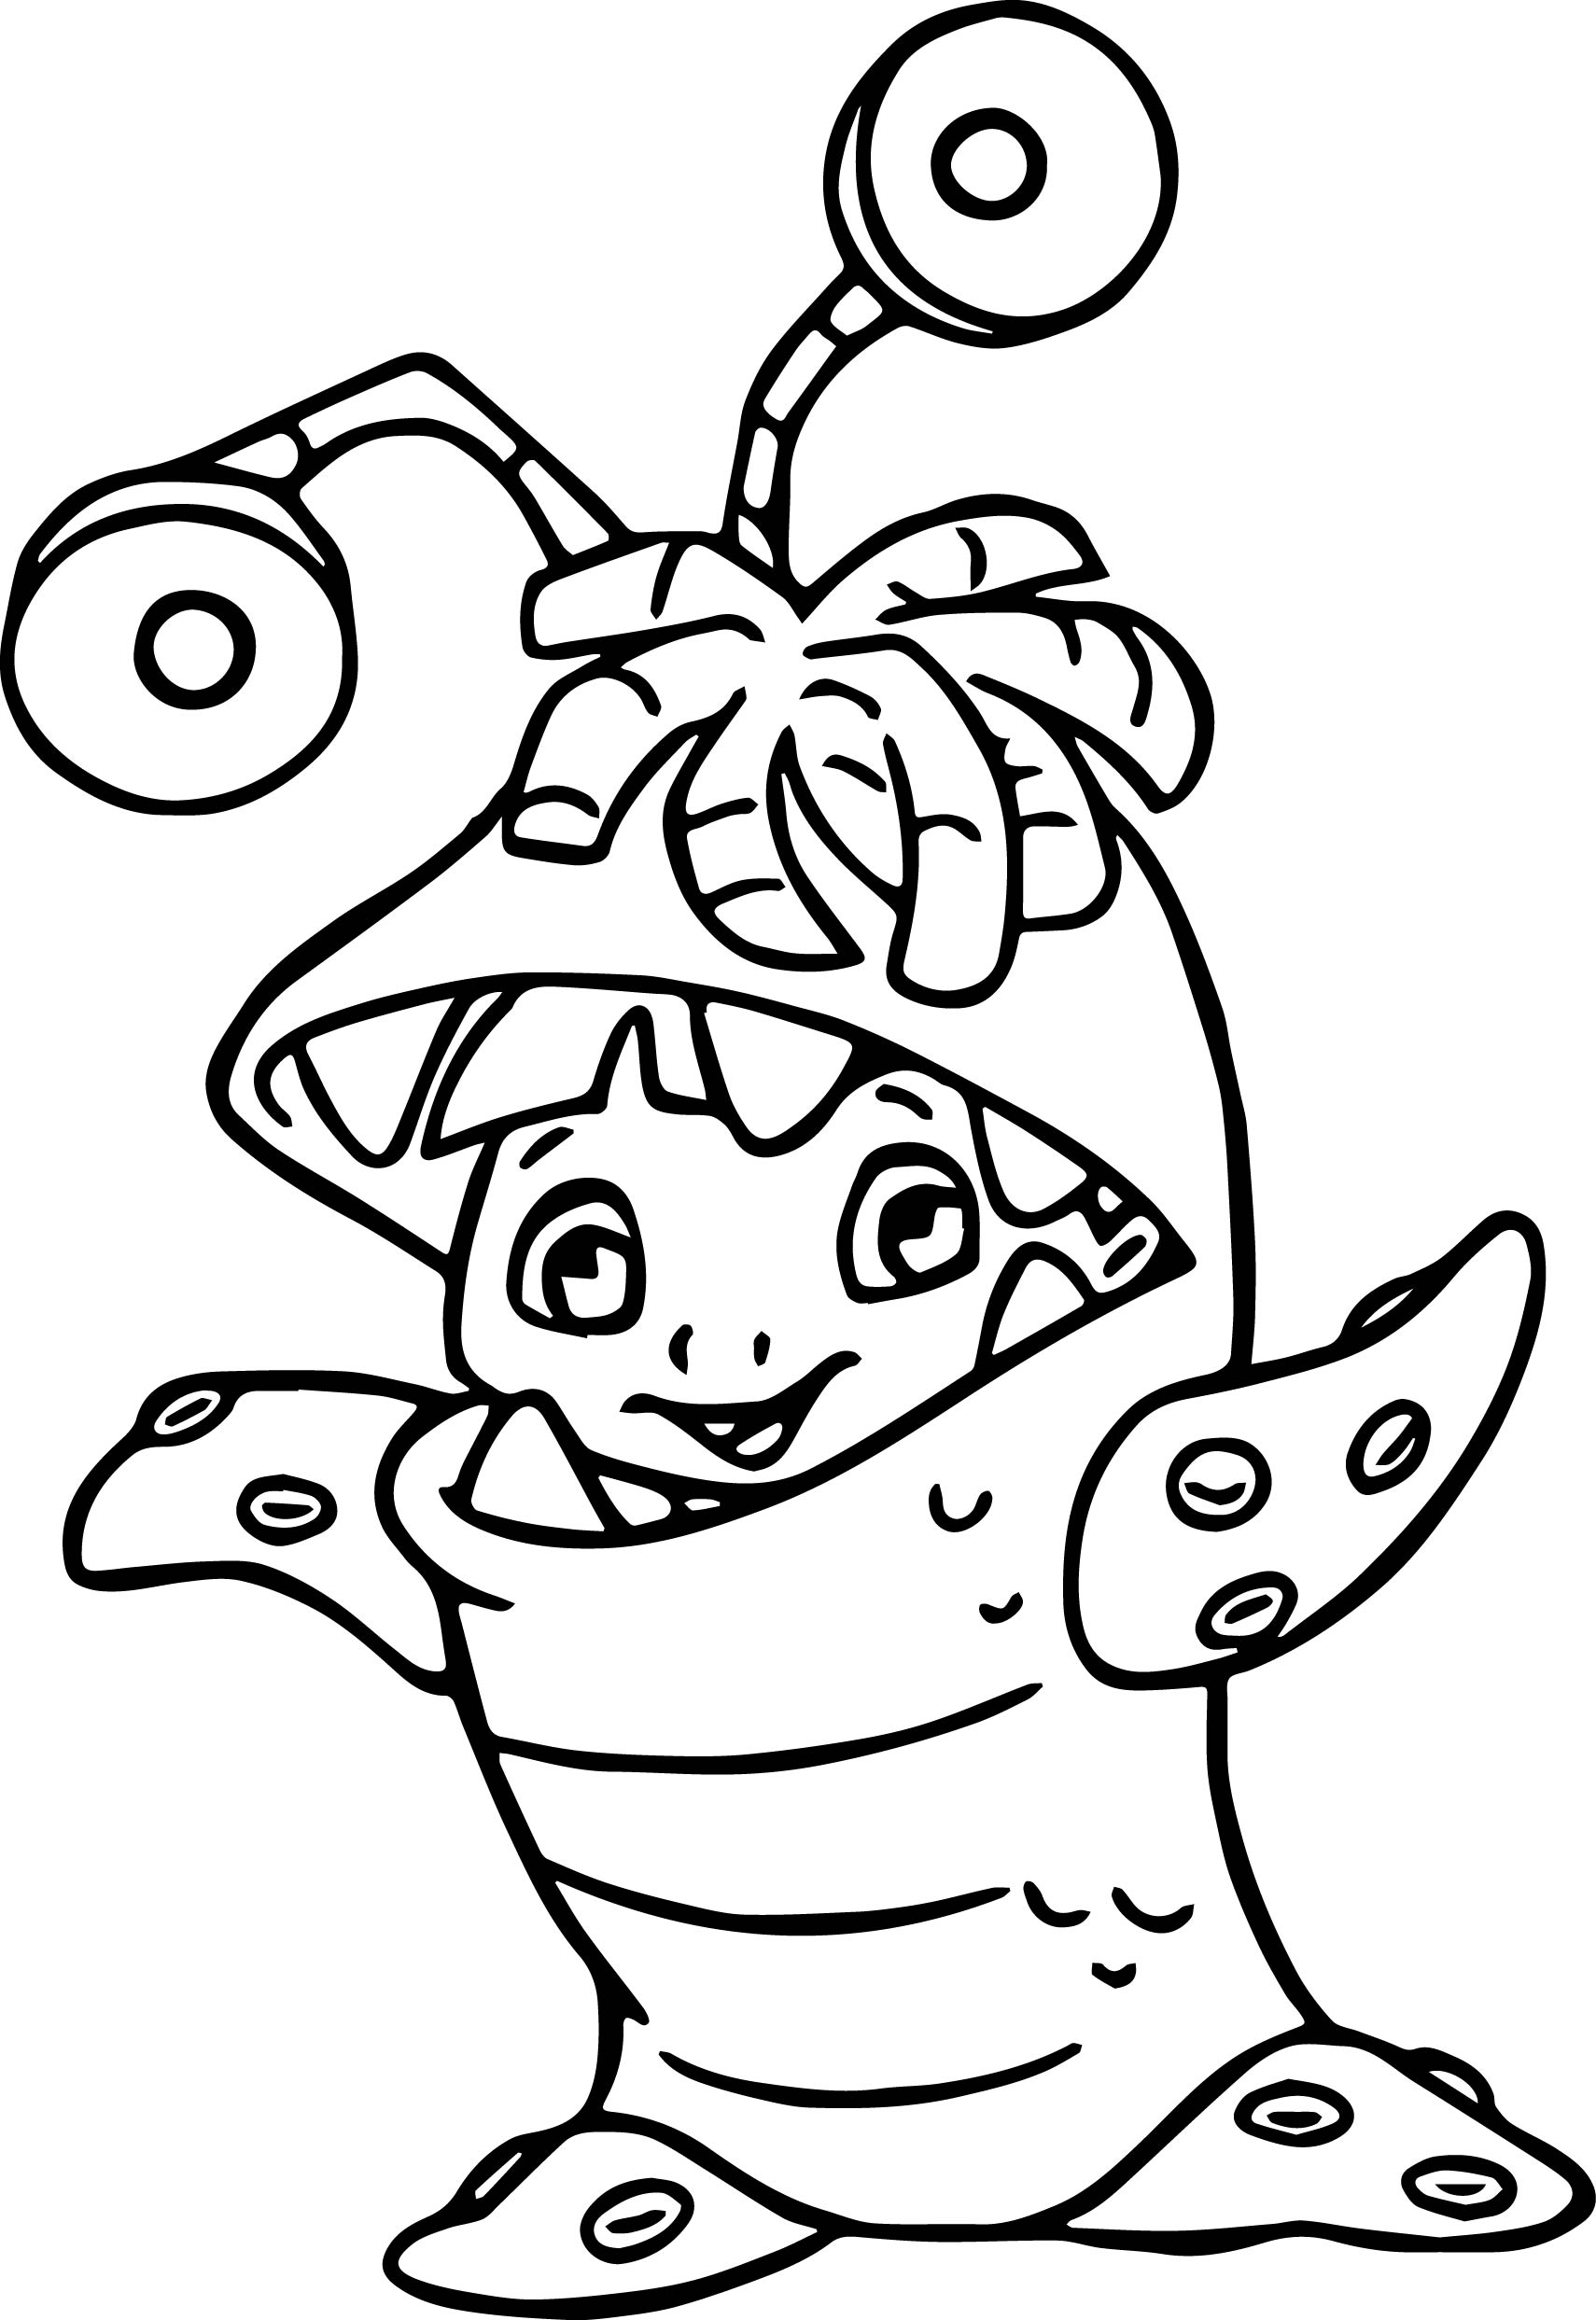 1710x2486 Iggy Moshi Monsters Coloring Page Printable Pages Click